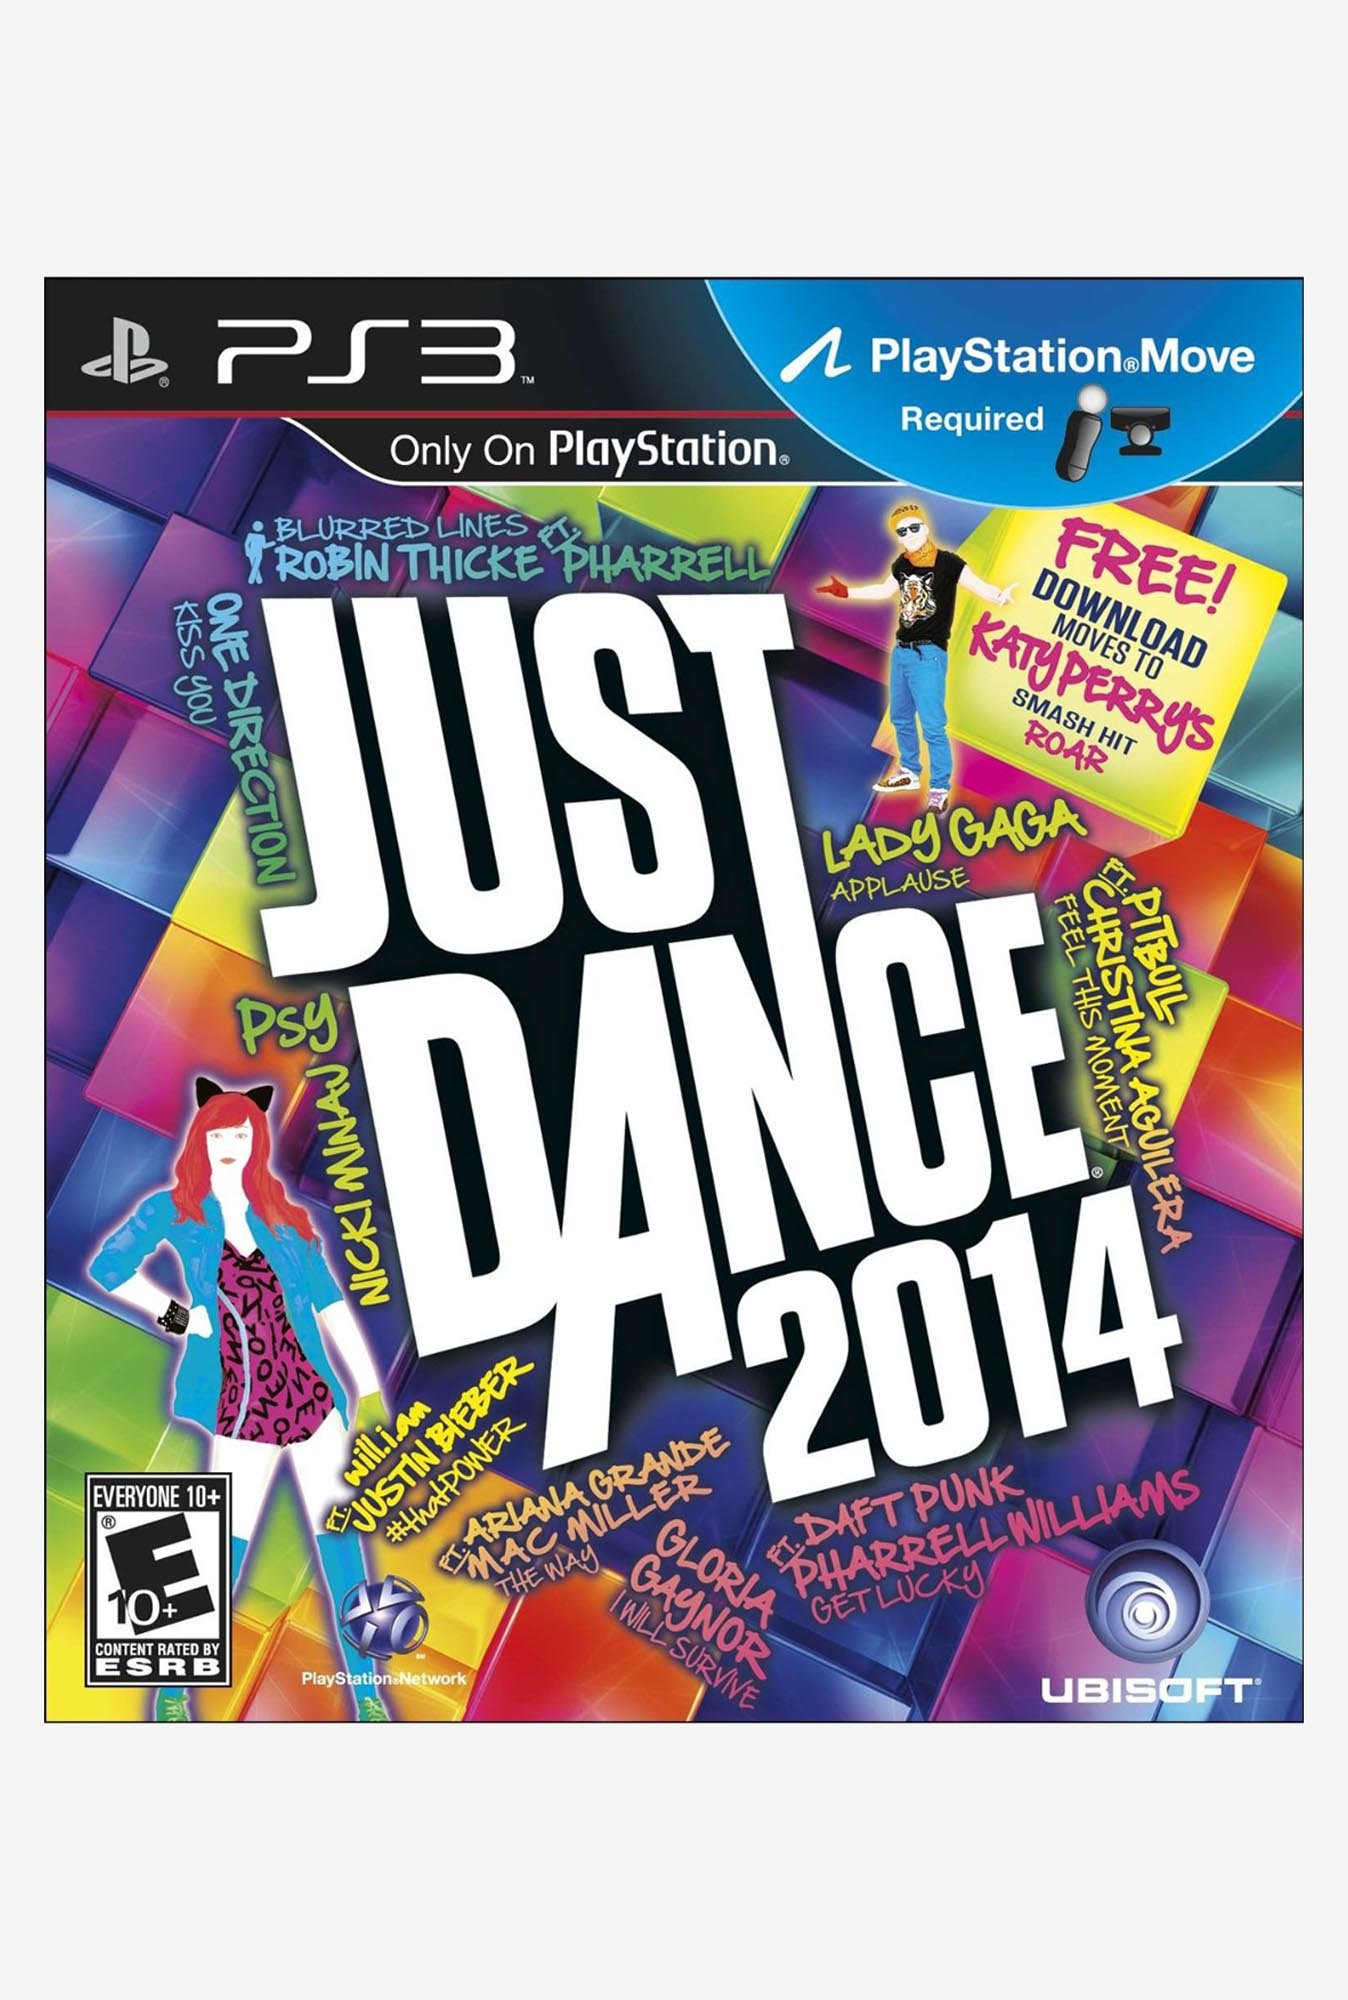 PS3 Just Dance 2014 Game